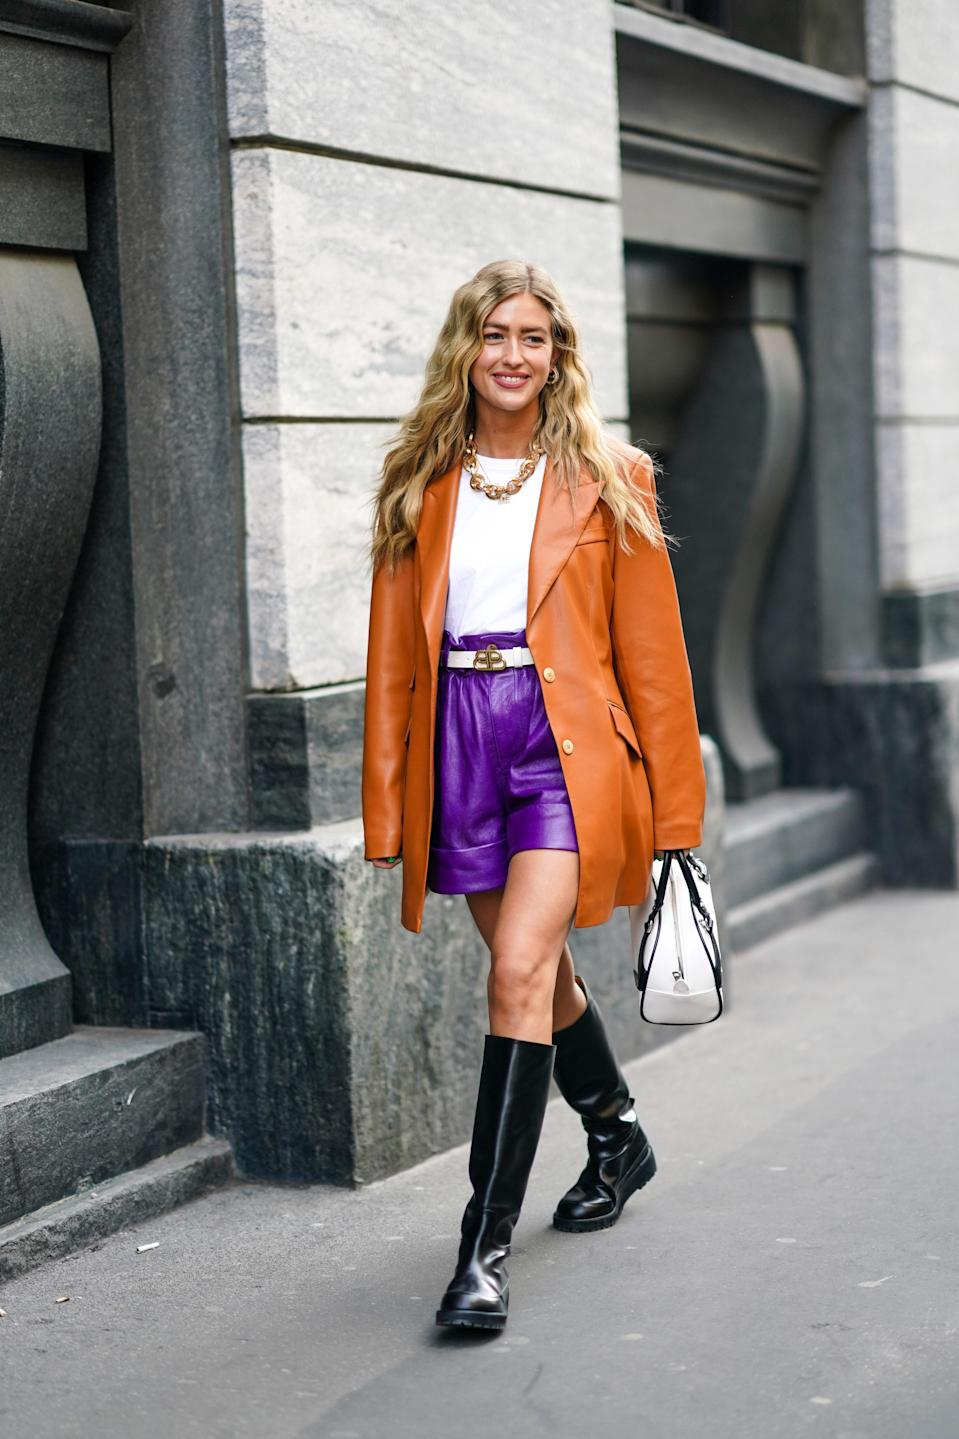 """Virtually everything in our closet has been given the leather update (from <a href=""""https://www.glamour.com/gallery/22-spring-suits-that-will-convince-you-to-swap-out-your-sundress?mbid=synd_yahoo_rss"""" rel=""""nofollow noopener"""" target=""""_blank"""" data-ylk=""""slk:suit separates"""" class=""""link rapid-noclick-resp"""">suit separates</a> to <a href=""""https://www.glamour.com/gallery/best-spring-dresses?mbid=synd_yahoo_rss"""" rel=""""nofollow noopener"""" target=""""_blank"""" data-ylk=""""slk:spring dresses"""" class=""""link rapid-noclick-resp"""">spring dresses</a>), but investing in a leather staple will go a long way in your wardrobe. Instead of opting for an accent piece like a <a href=""""https://www.glamour.com/story/best-headbands?mbid=synd_yahoo_rss"""" rel=""""nofollow noopener"""" target=""""_blank"""" data-ylk=""""slk:headband"""" class=""""link rapid-noclick-resp"""">headband</a> or removable collar, consider a blazer, trouser, or button-up. It'll be just as effortless to style as its non-leather counterpart, but the texture will instantly elevate your entire look."""